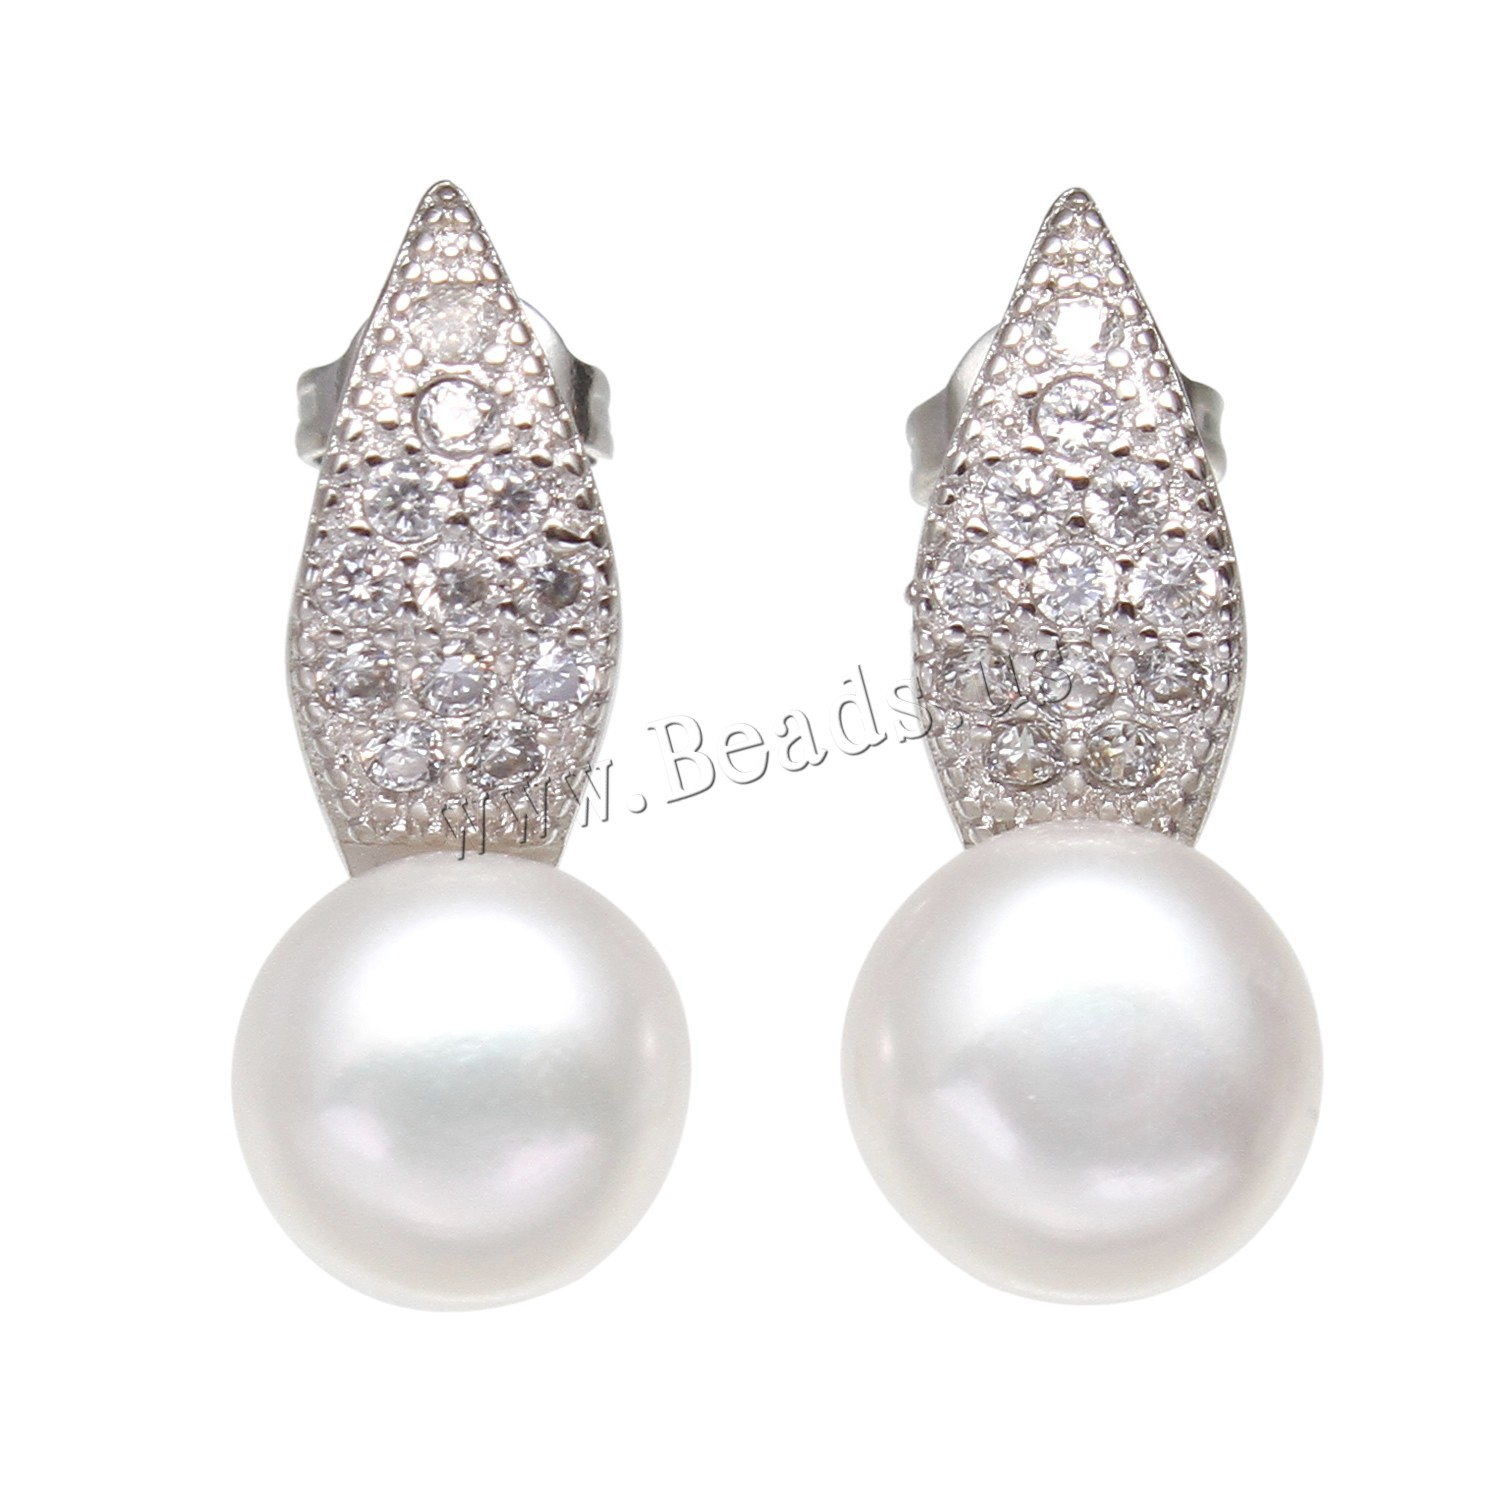 Buy Freshwater Pearl Earrings Brass Button platinum color plated woman & rhinestone white 7-8mmuff0c8x24mm Sold Pair